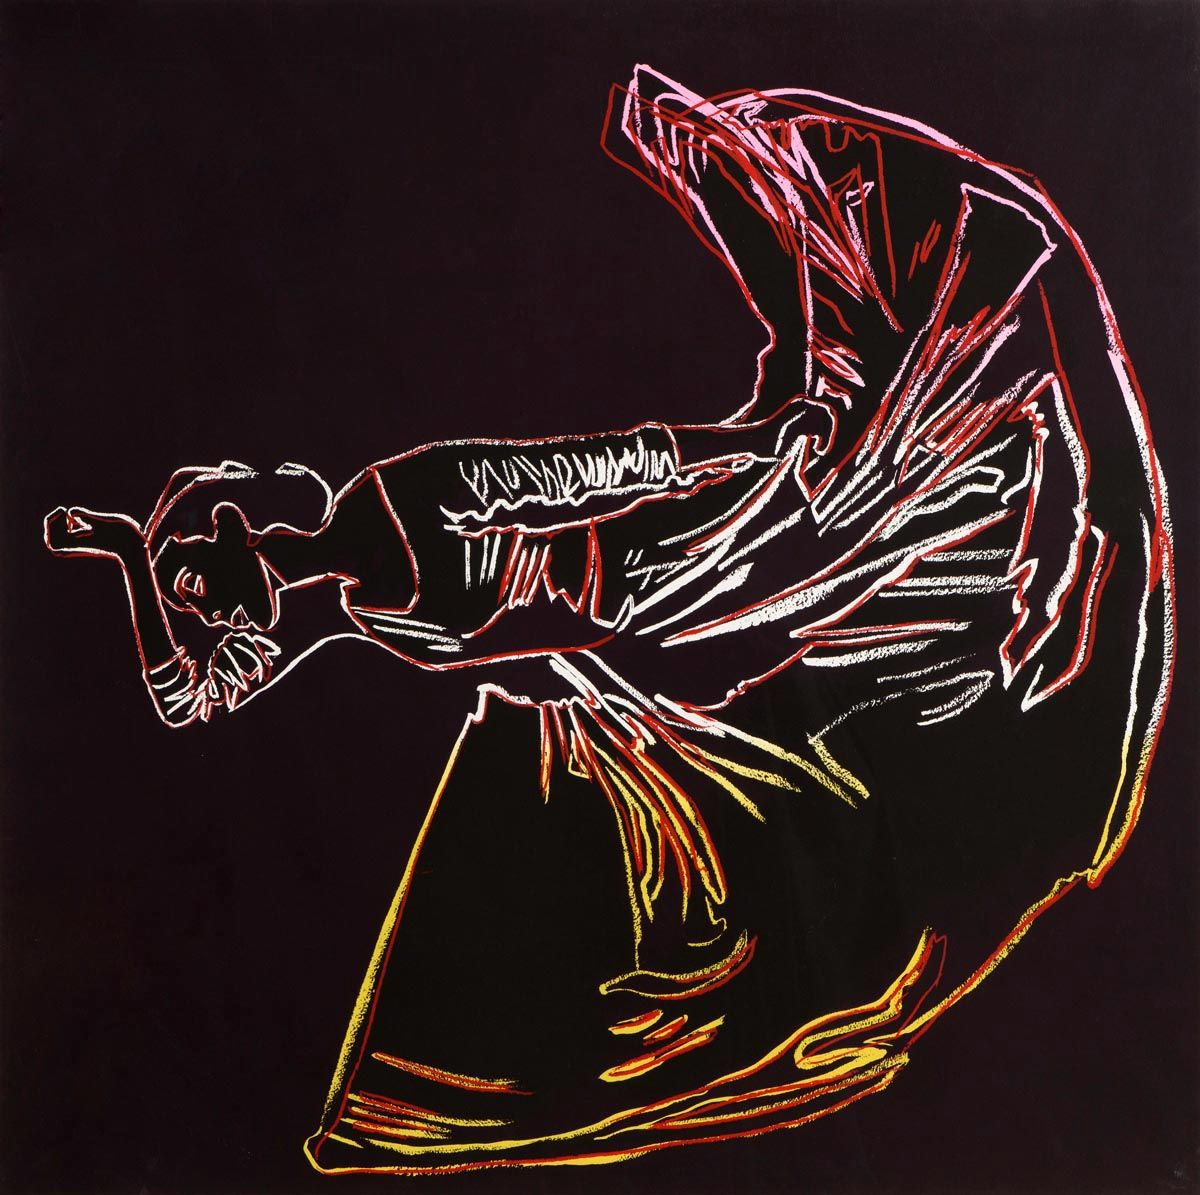 Andy Warhol, Martha Graham: Letter to the World (The Kick) (1986) at Morgan O'Driscoll Art Auctions